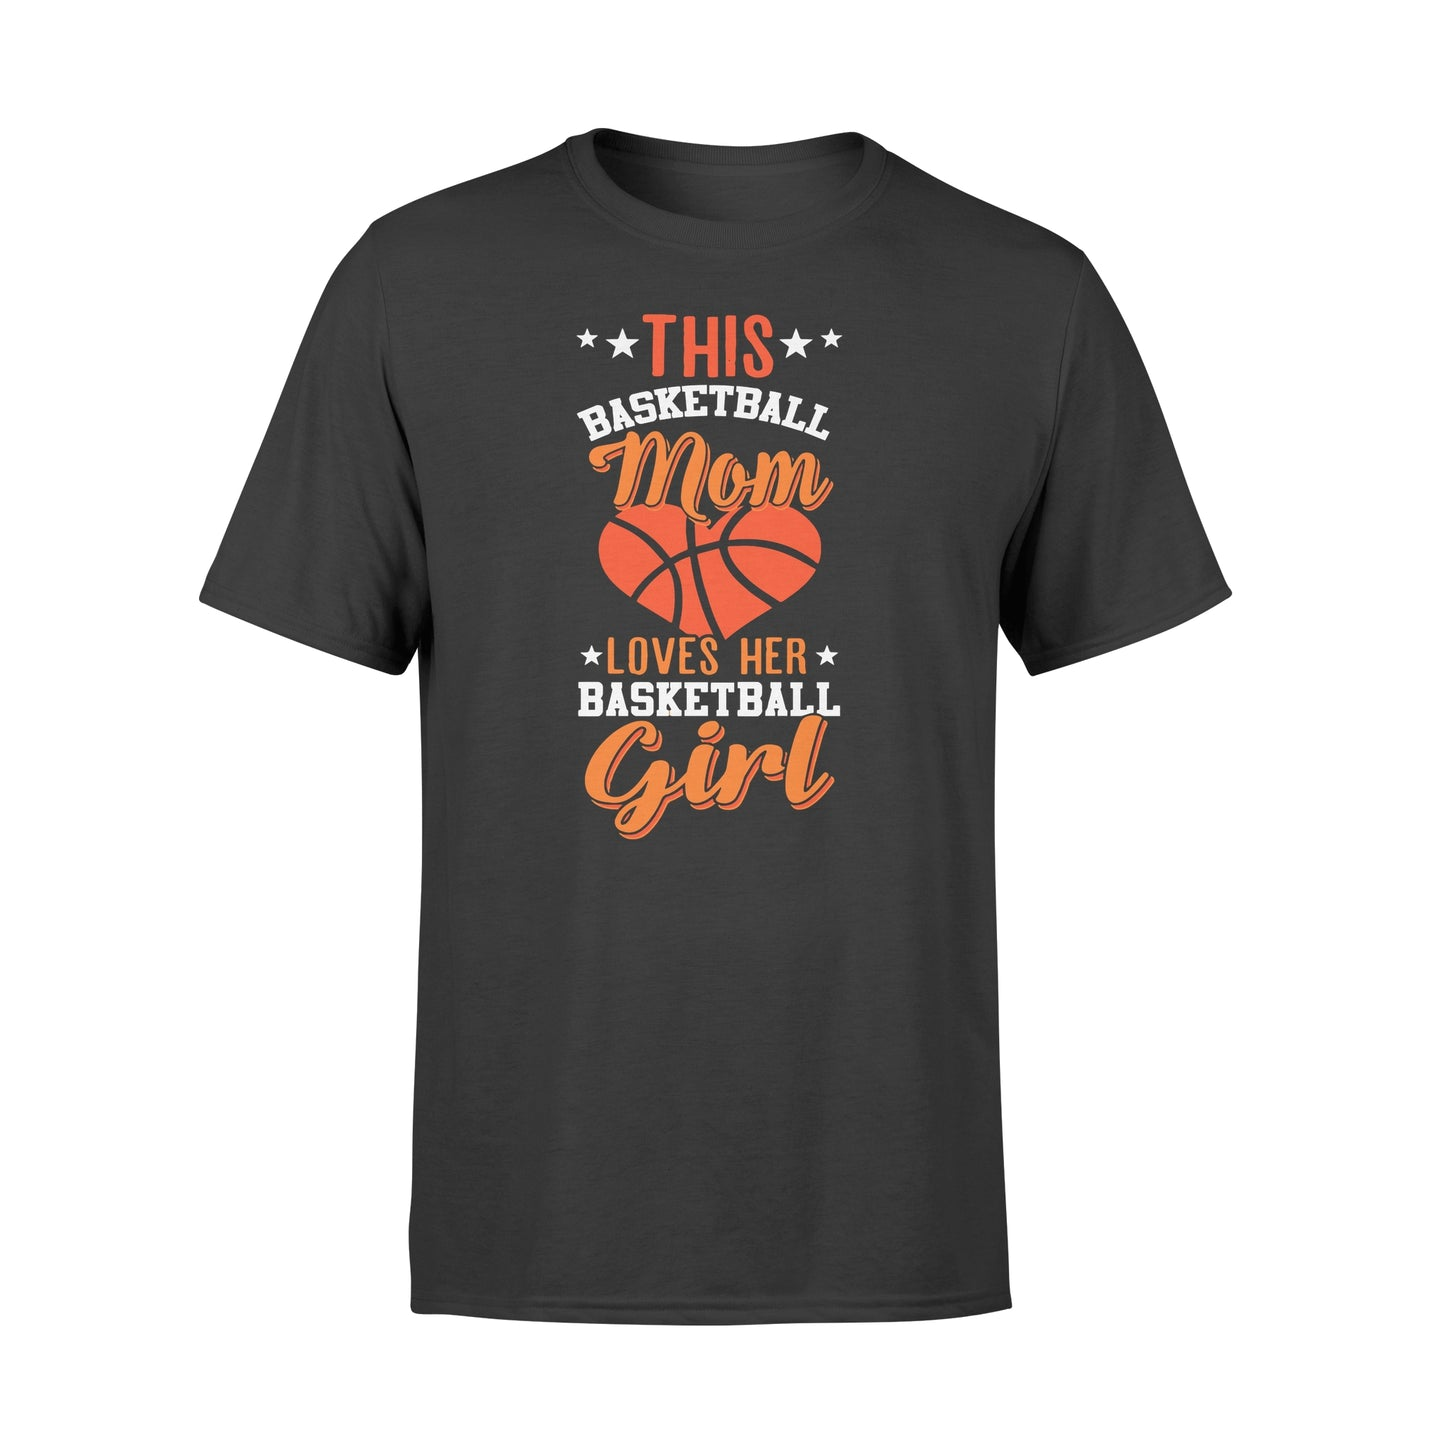 This Basketball Mom Loves Her Basketball Girl - Standard T-shirt Apparel S / Black